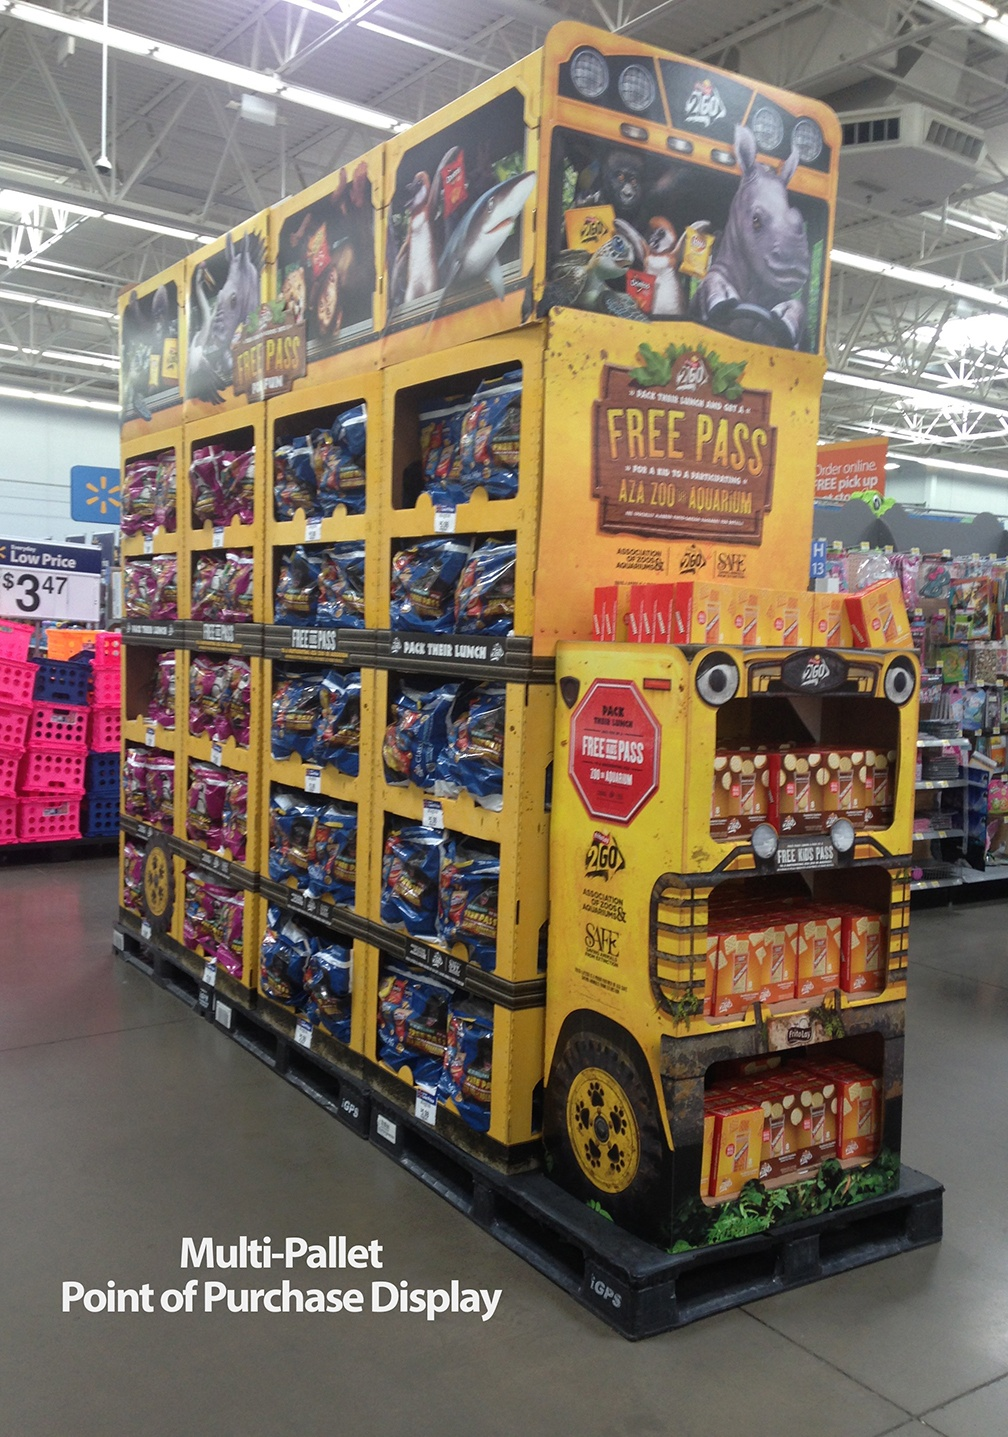 multi-pallet-point-of-purchase-display.jpg